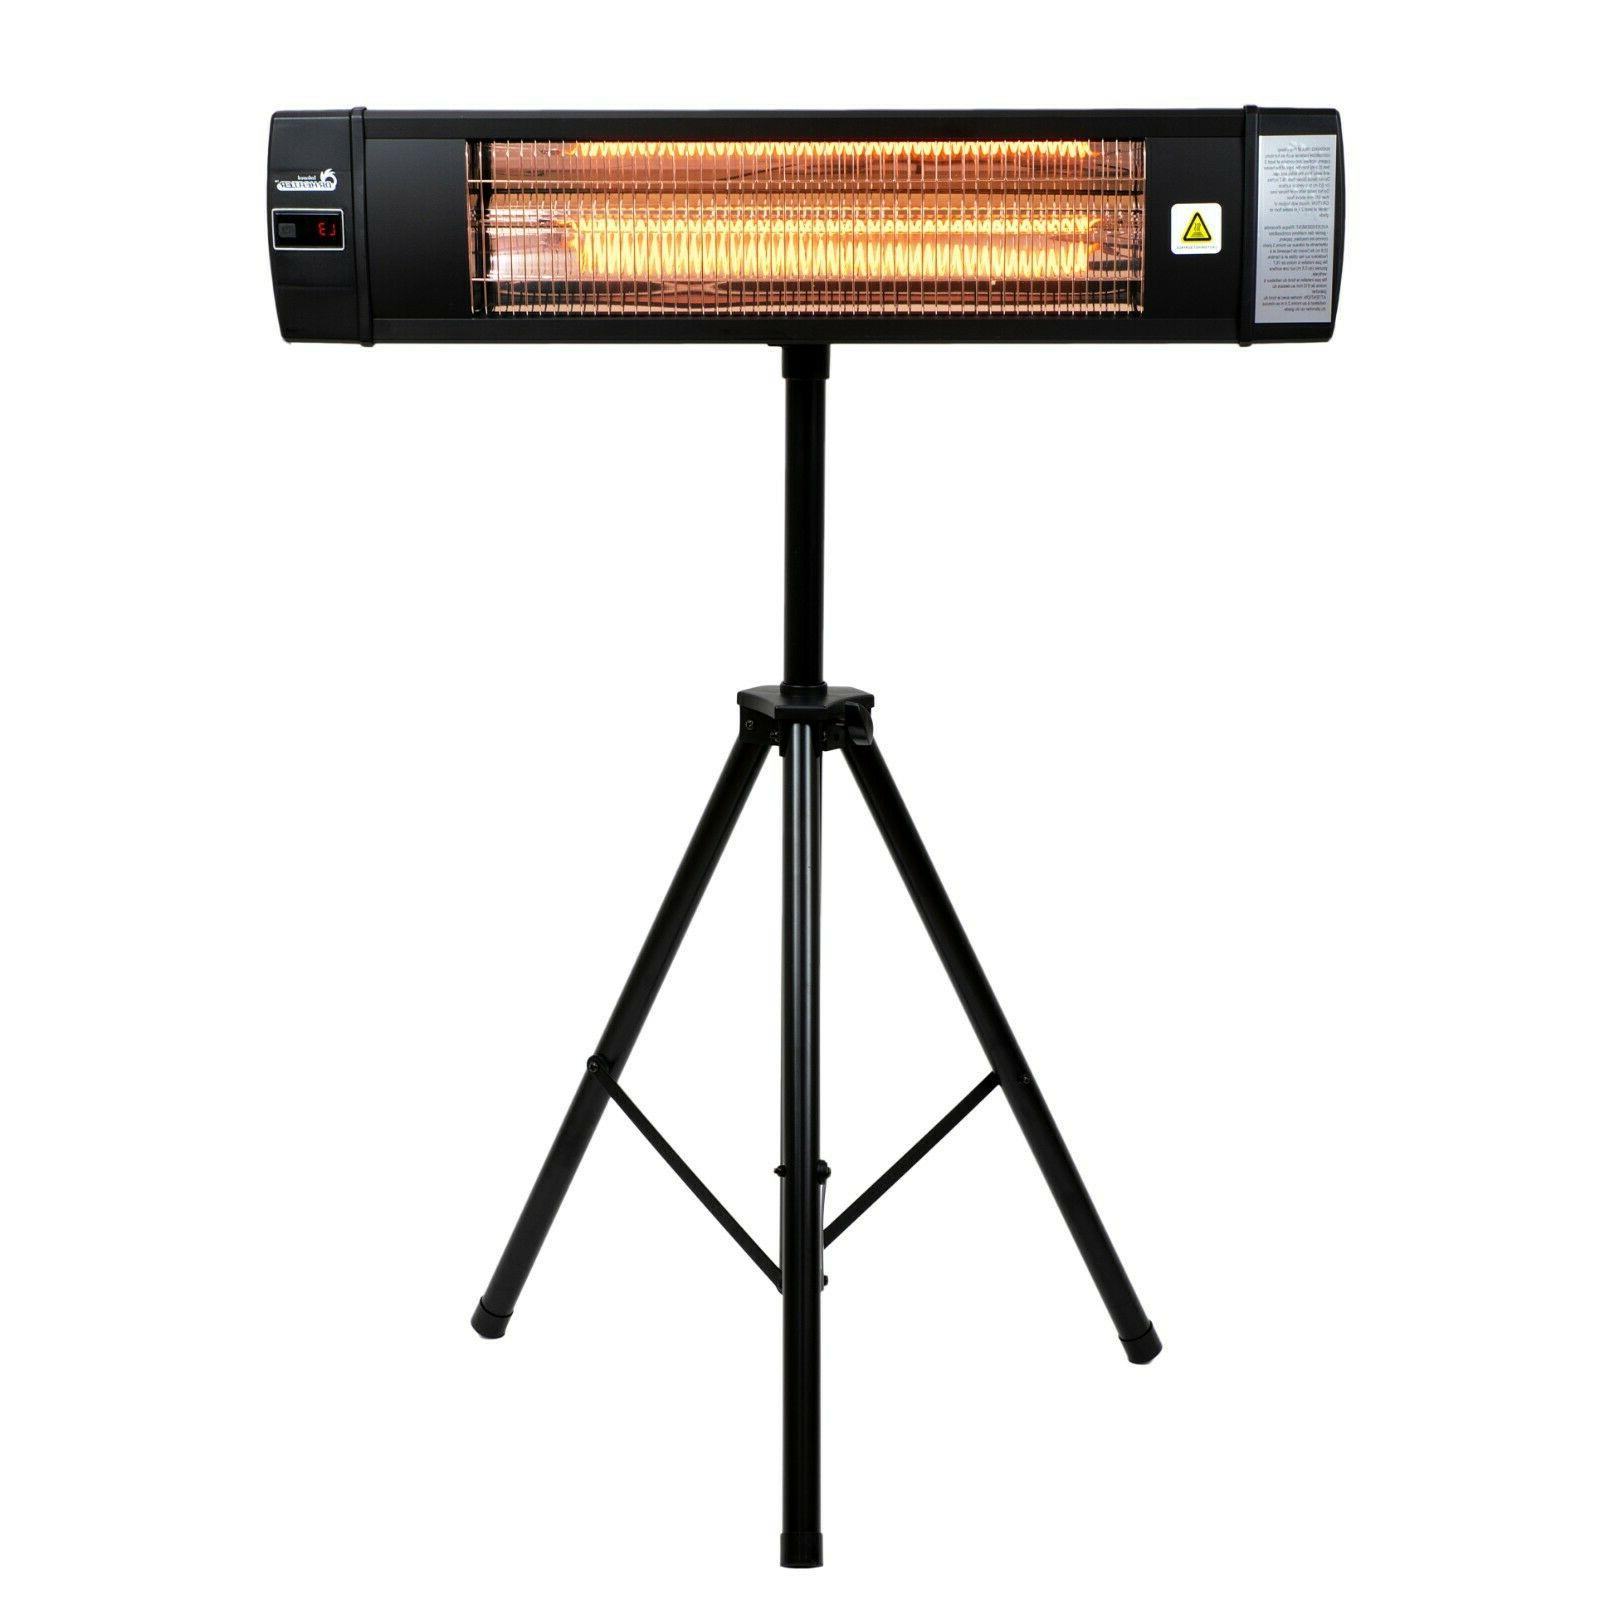 Dr. Infrared Carbon Outdoor Patio Heater Remote